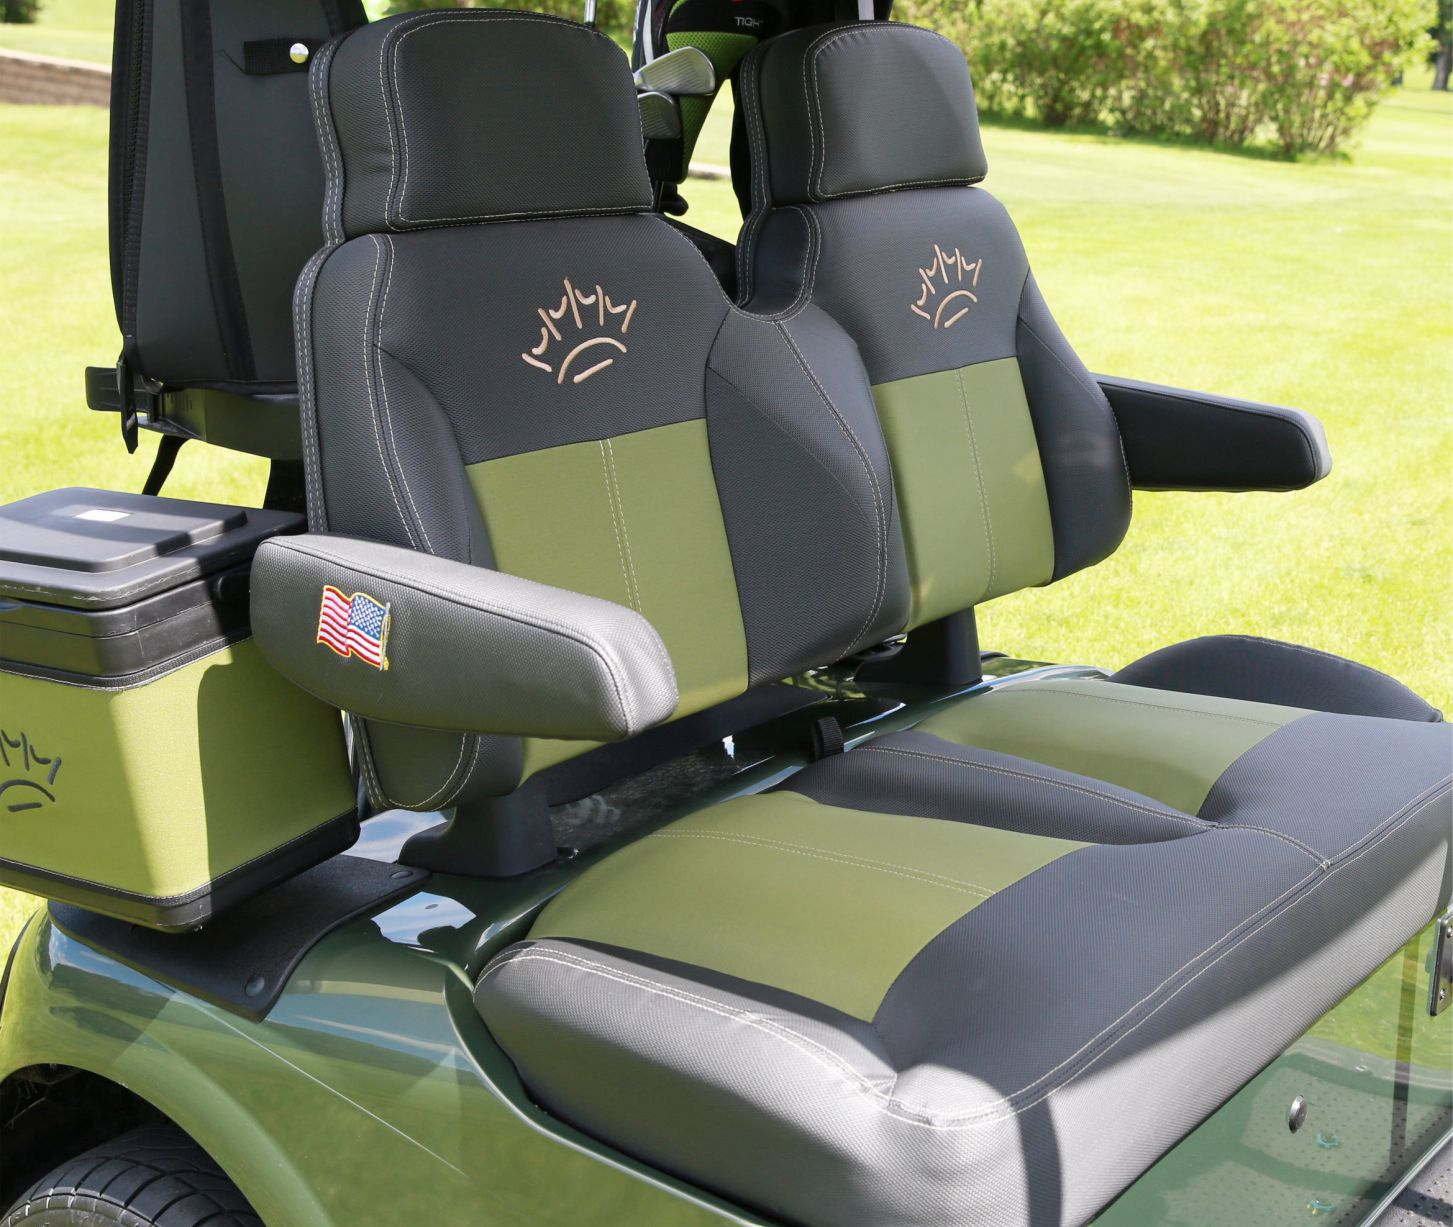 golf-cart-seat-cushions-golf-cart-seat-covers-03.jpg